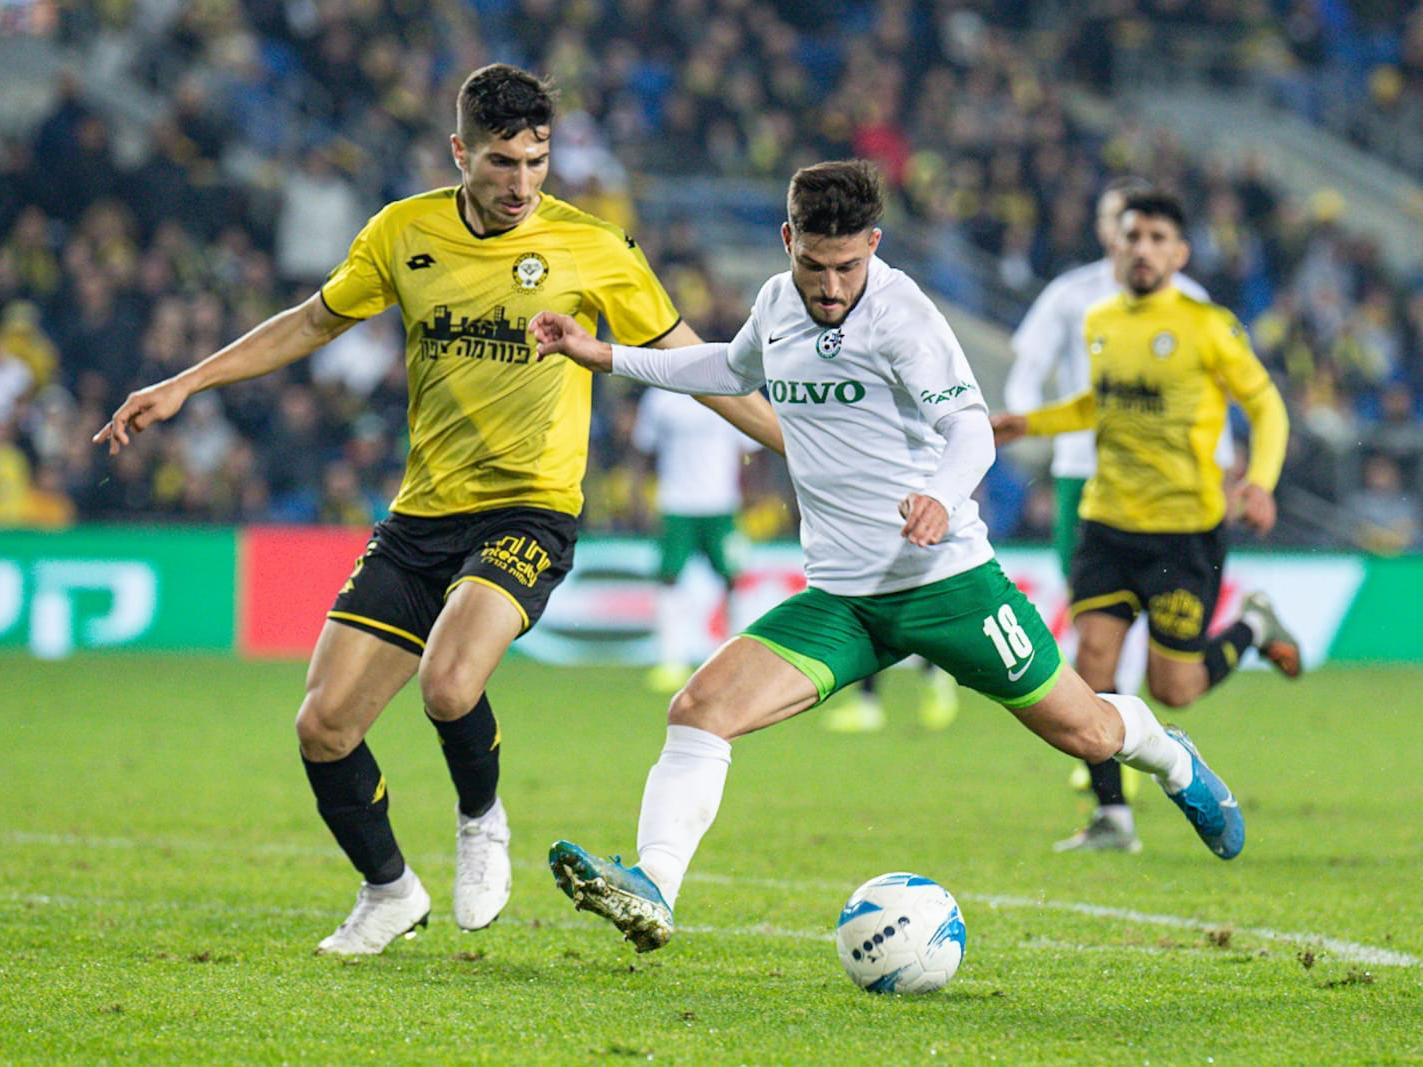 Maccabi beats 0:2 at Netanya